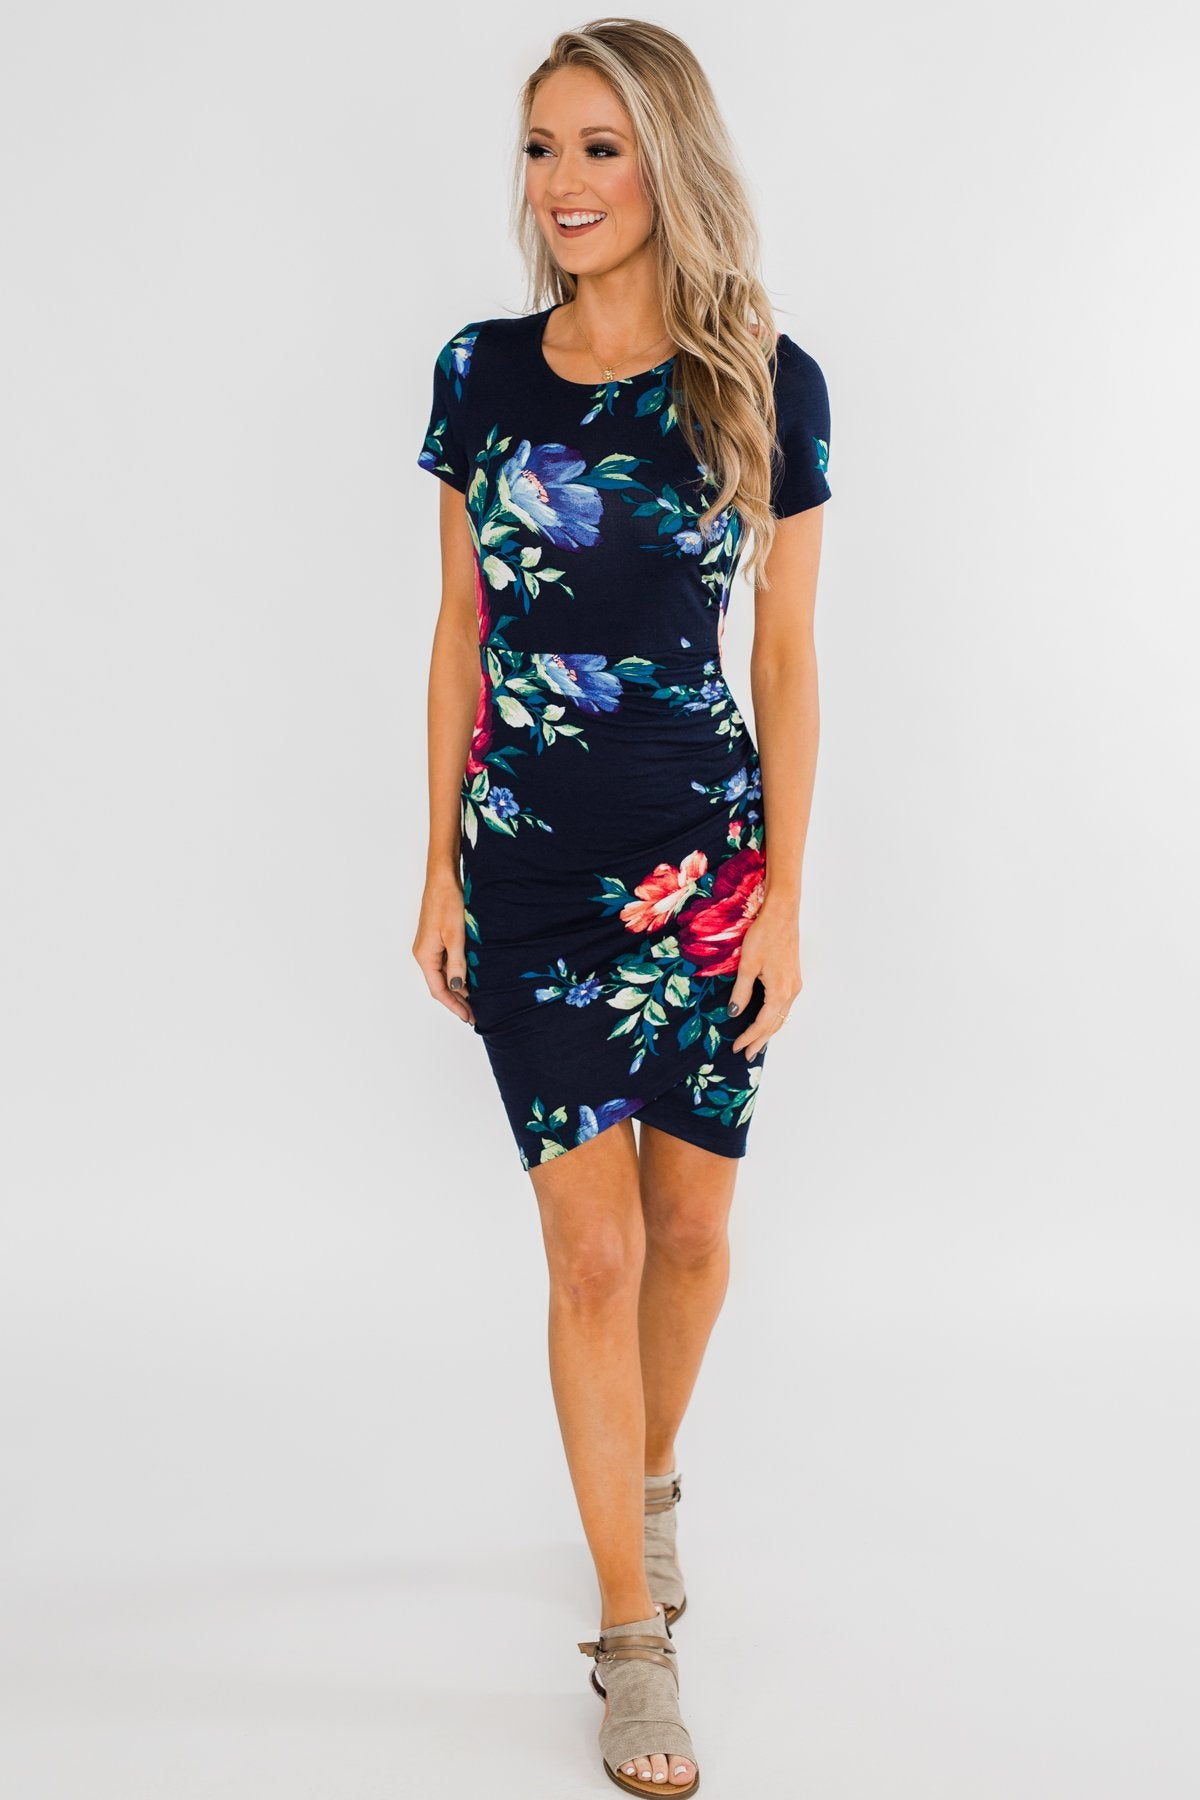 Fairy Tale Ending Floral Dress- Navy